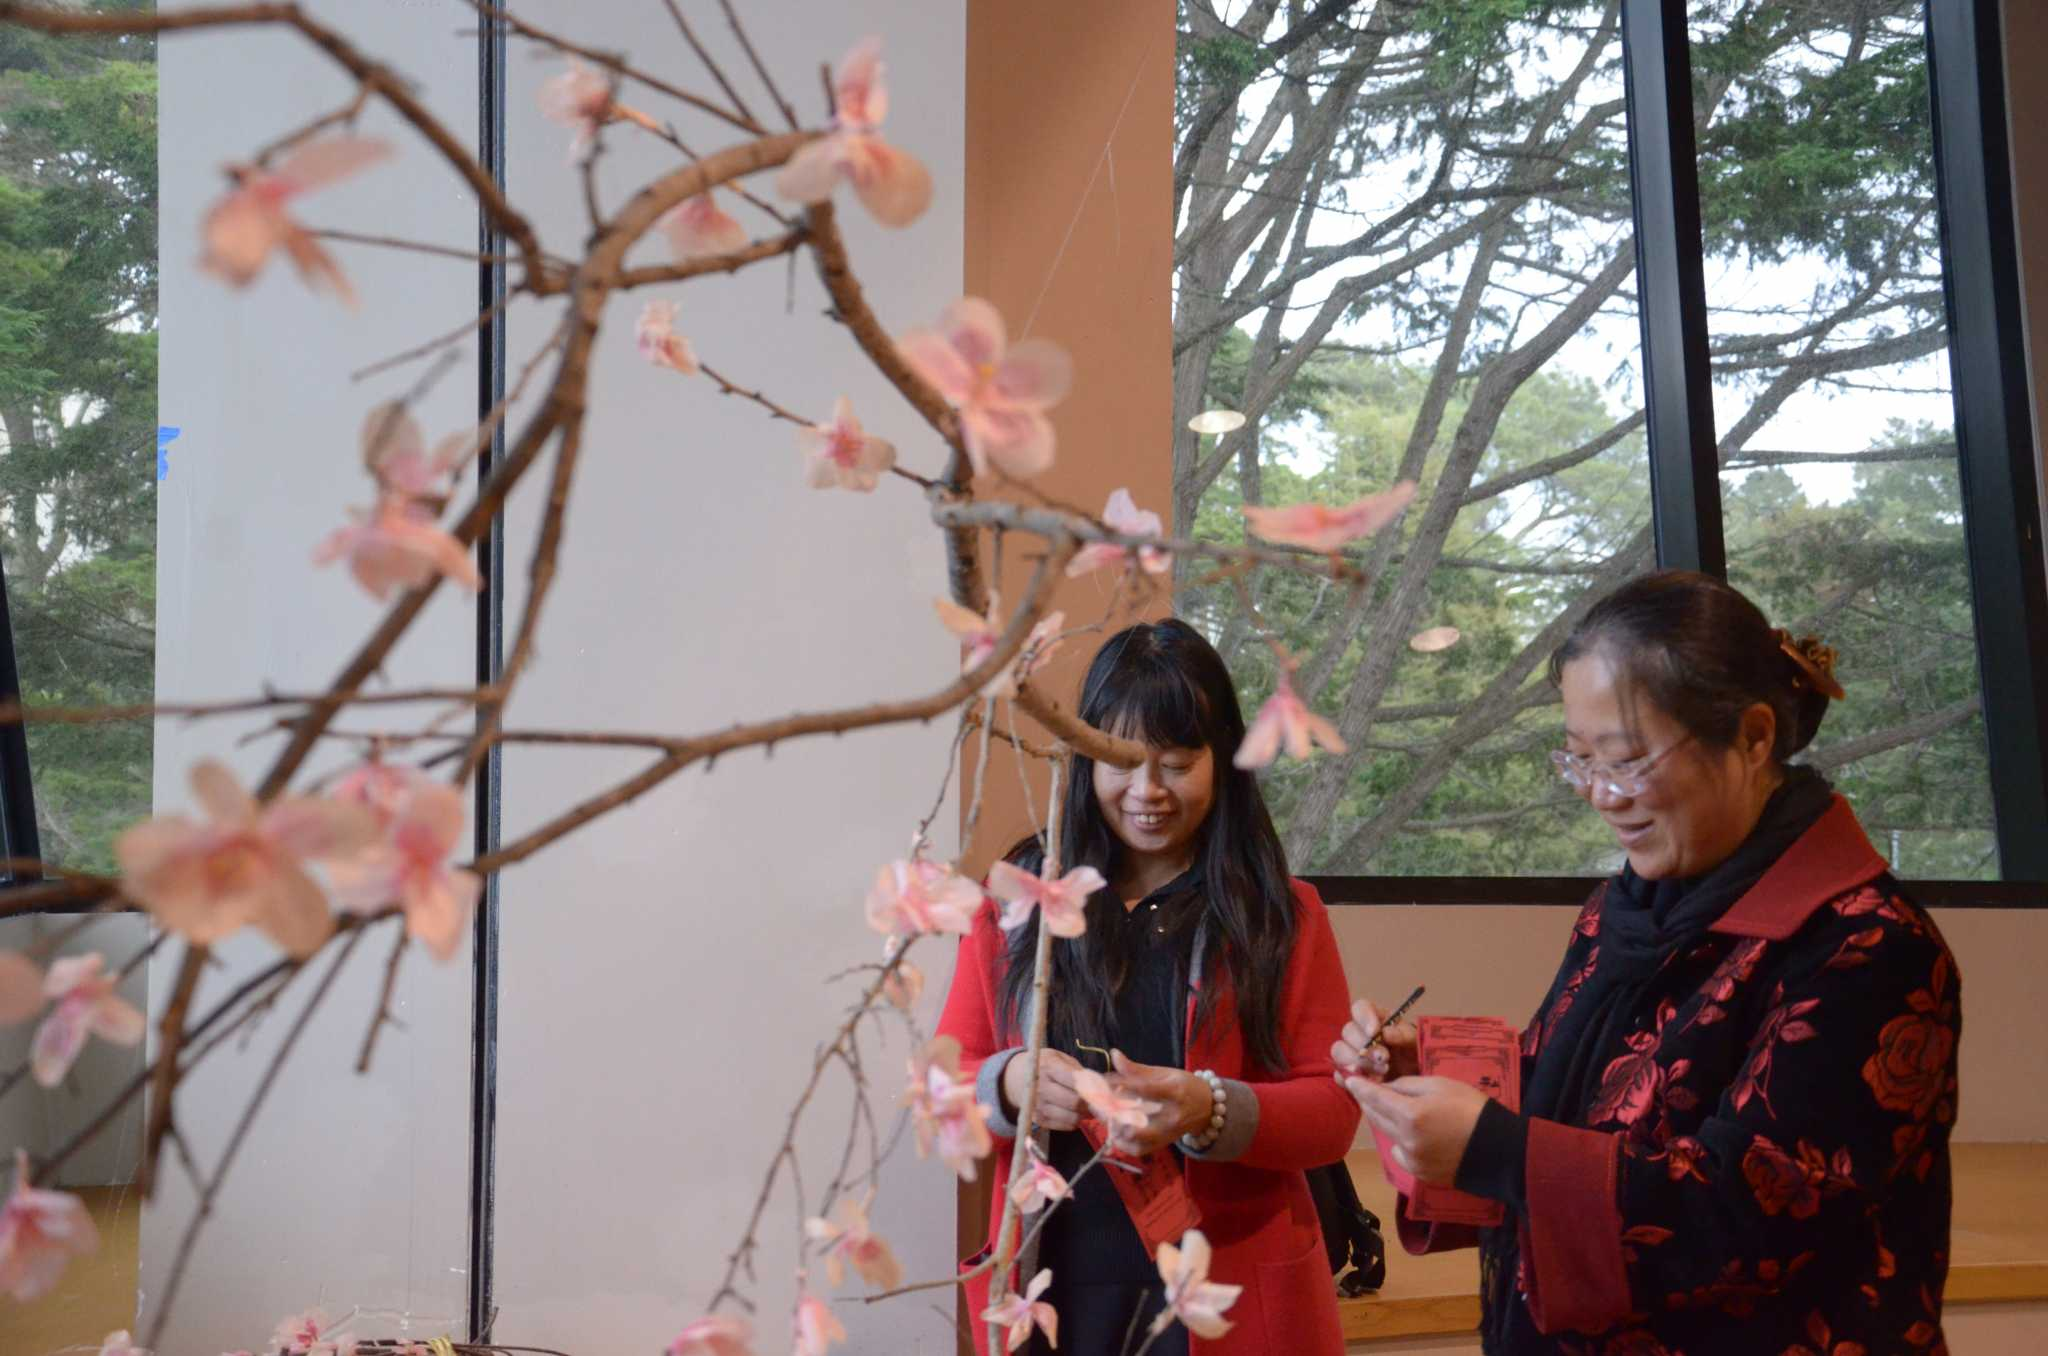 Chinese language students Yafang He, and Liyao Zhu hang their wishes on a wishing tree at the Chinese New Year celebration held on Feb. 3, 2017 at Jack Adams Hall. (Christianna Fjelstad/Xpress)